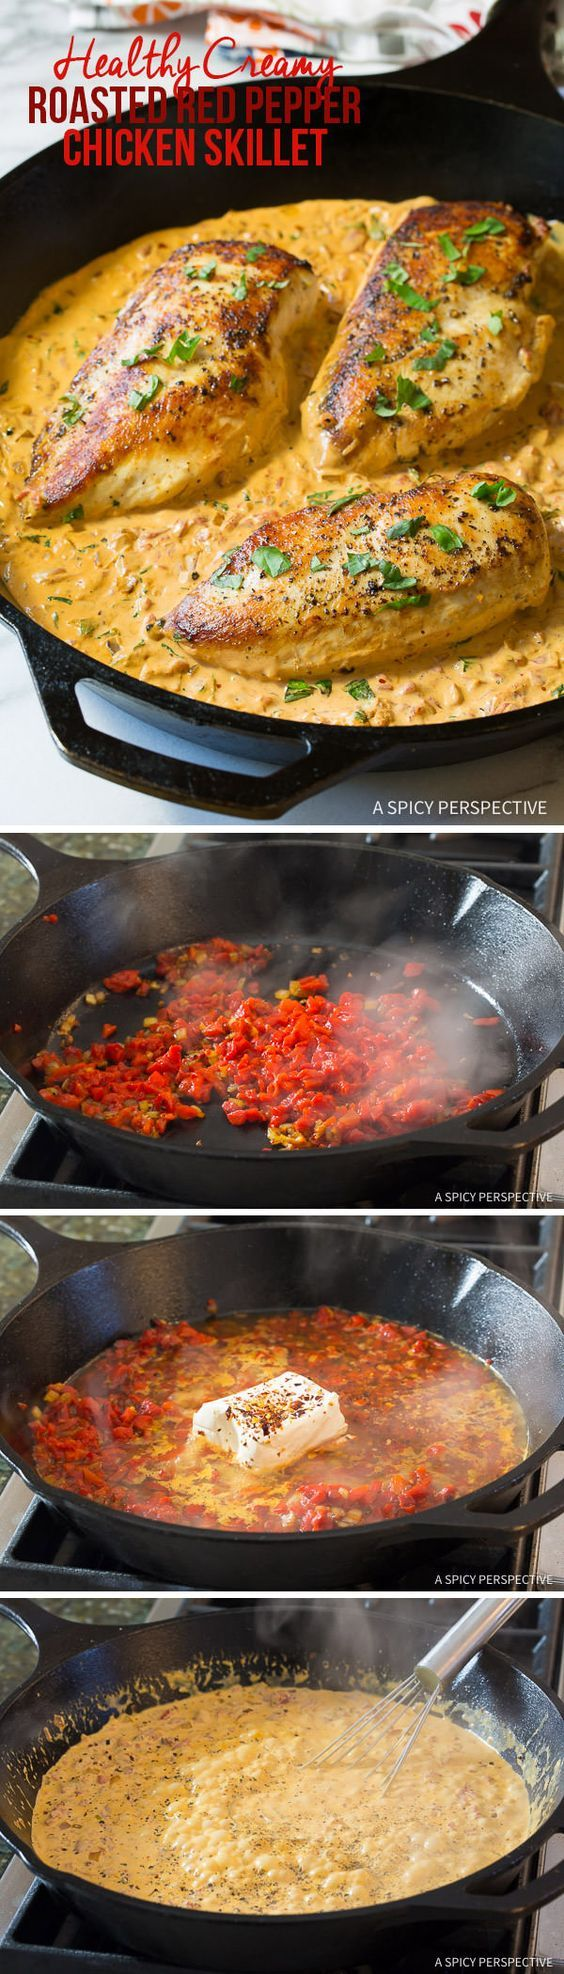 Healthy & Creamy Roasted Red Pepper Chicken Skillet Recipe from @spicyperspectiv